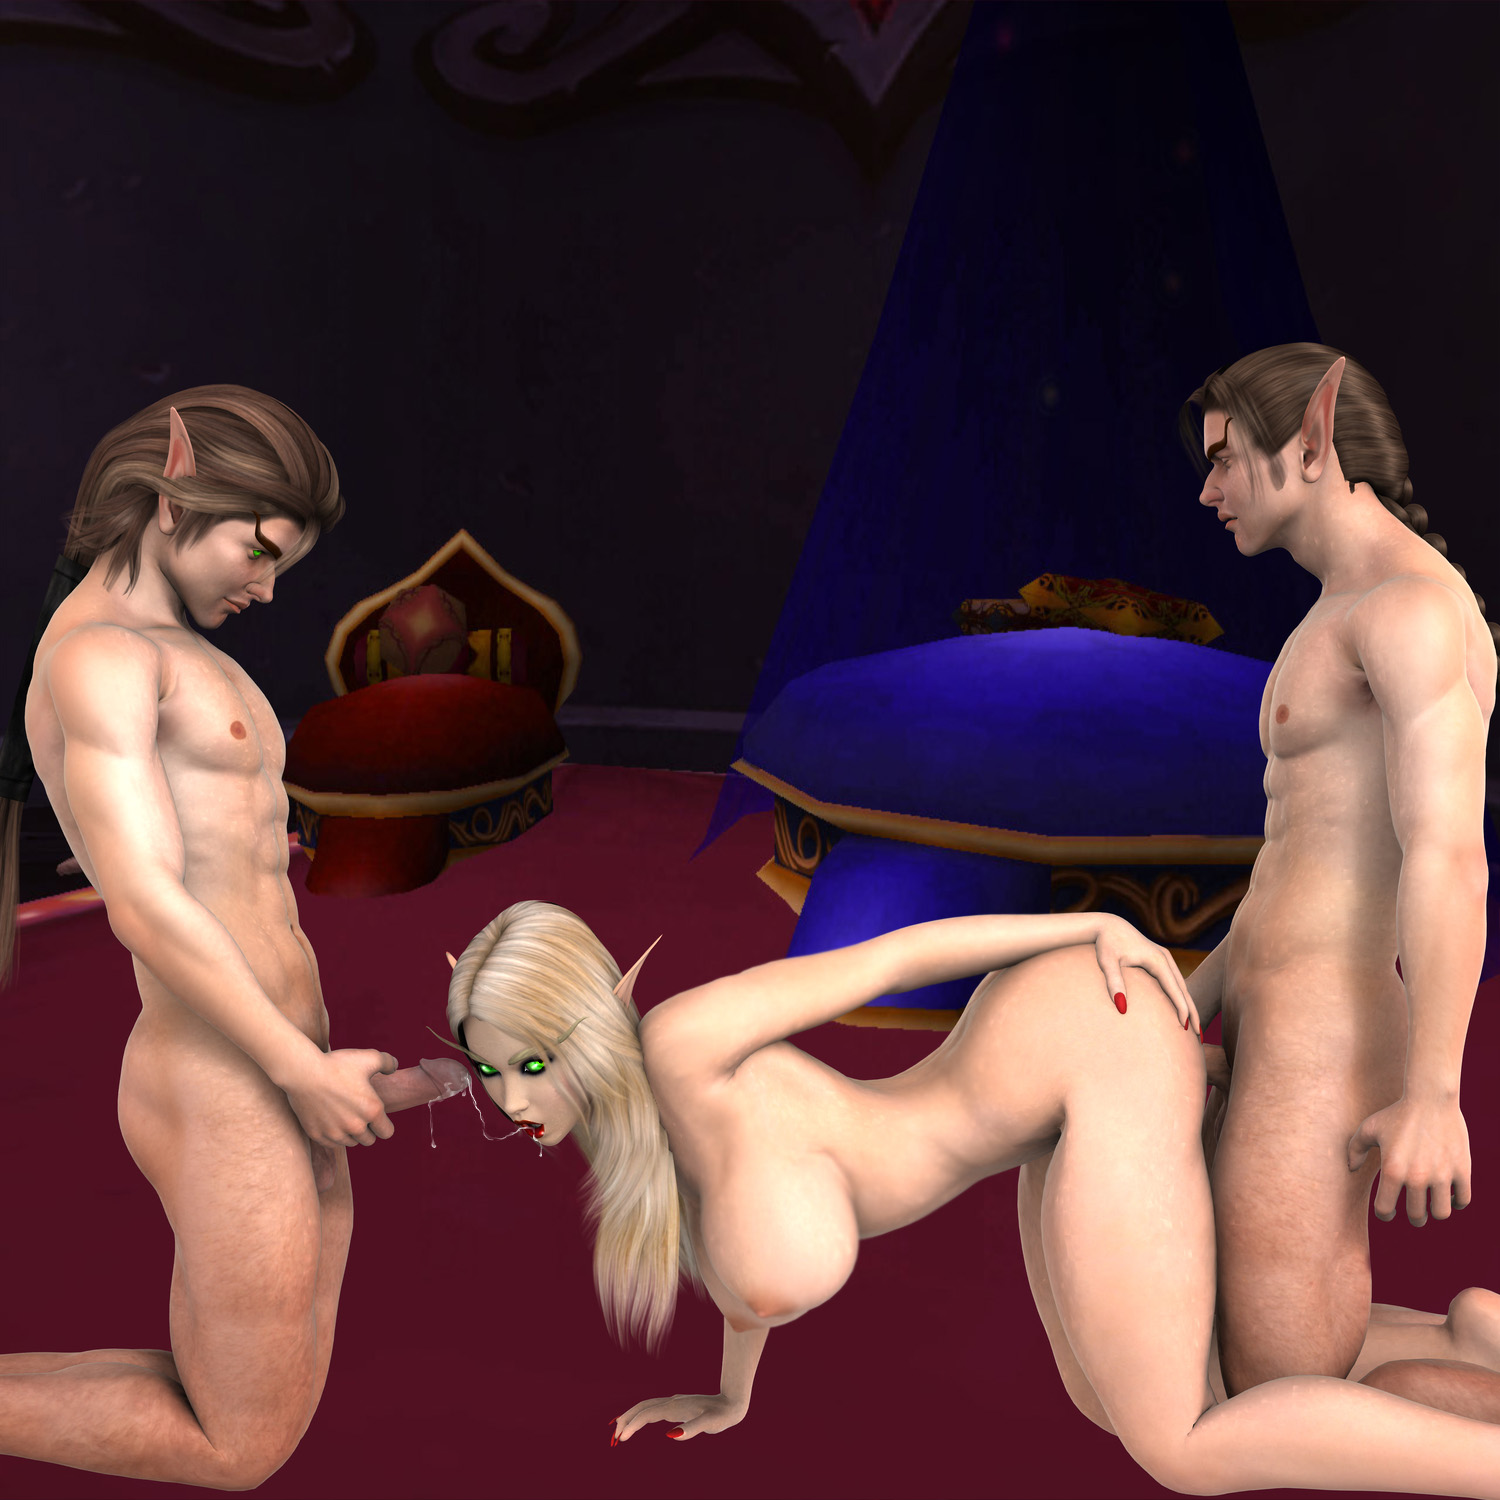 3d World of Porncraft adult sex download